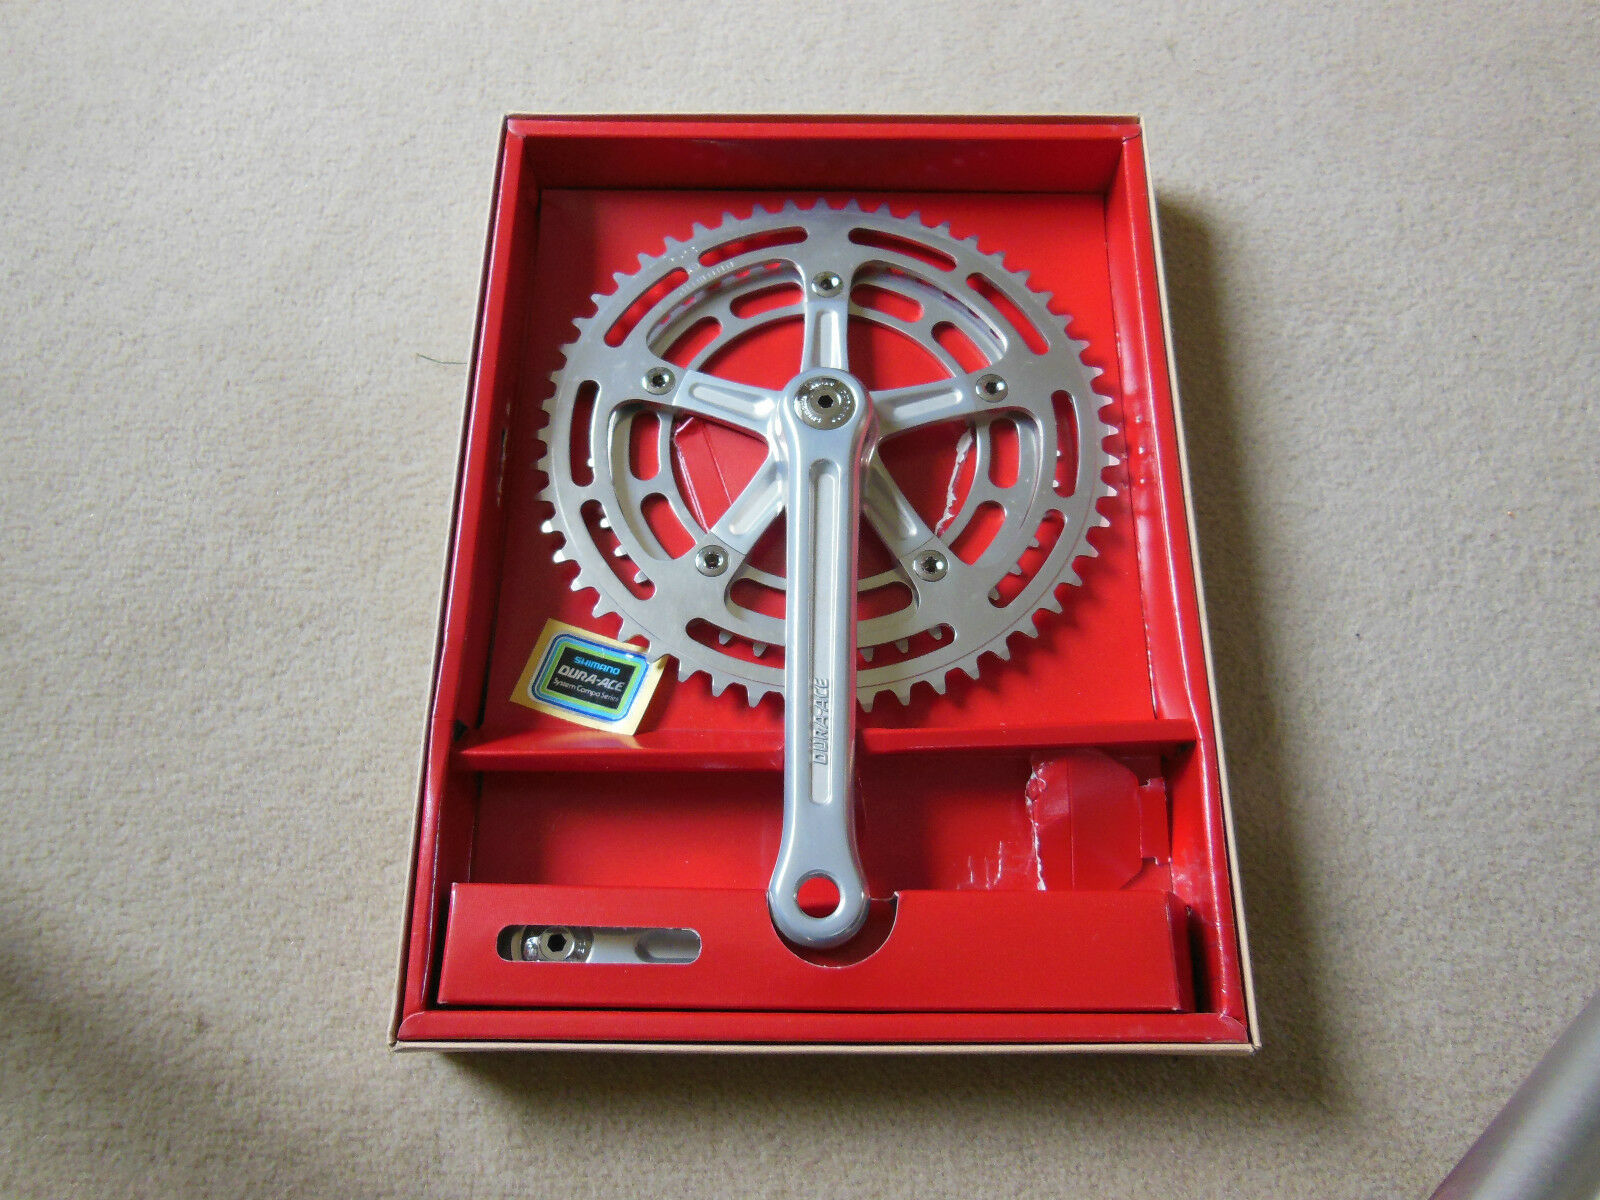 VINTAGE SHIMANO DURA ACE COTTERLESS RACING BICYCLE CHAINSET, NOS 1ST  GENERATION  offering 100%